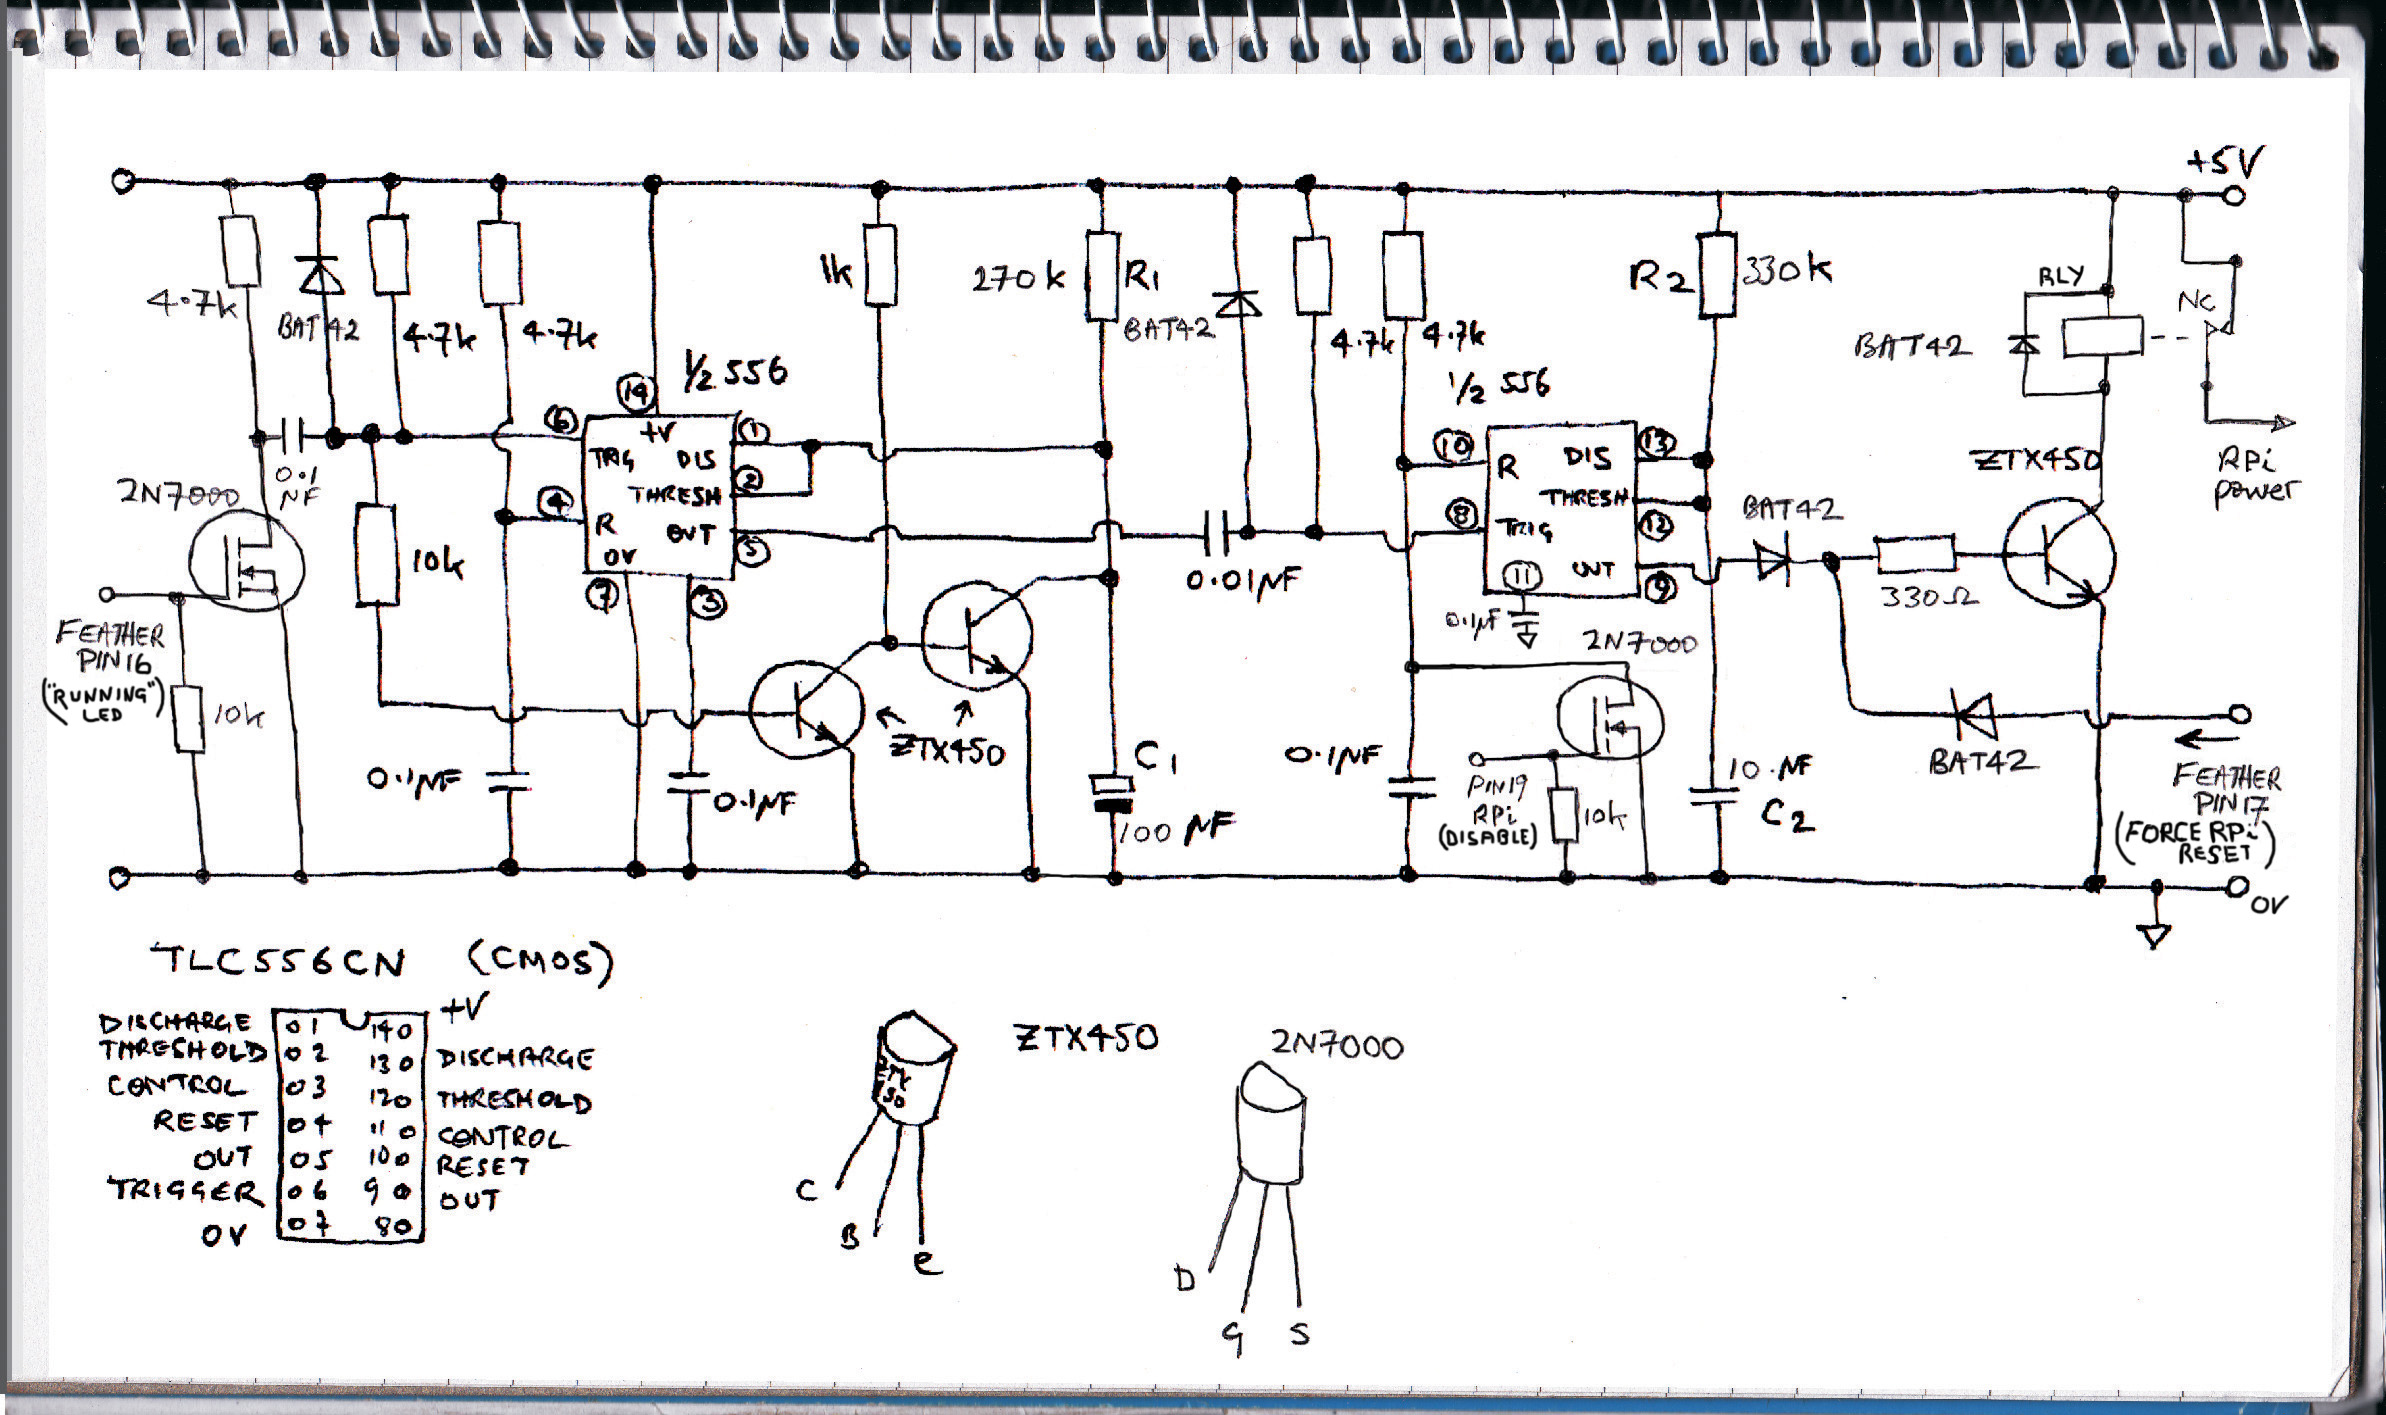 Greenhouse controller watchdog circuit diagram